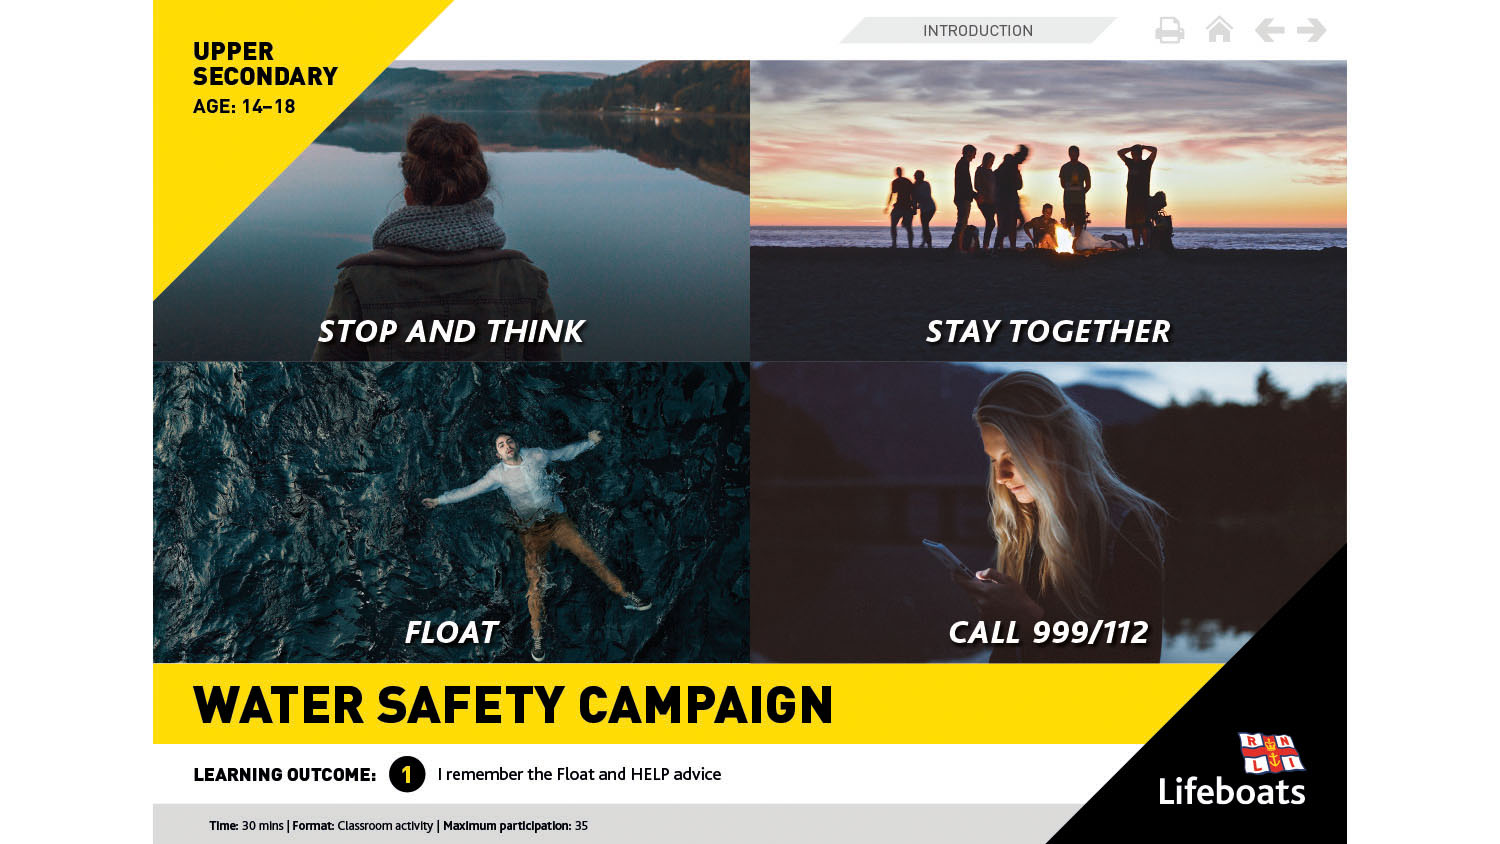 RNLI Water Safety Campaign activity slides